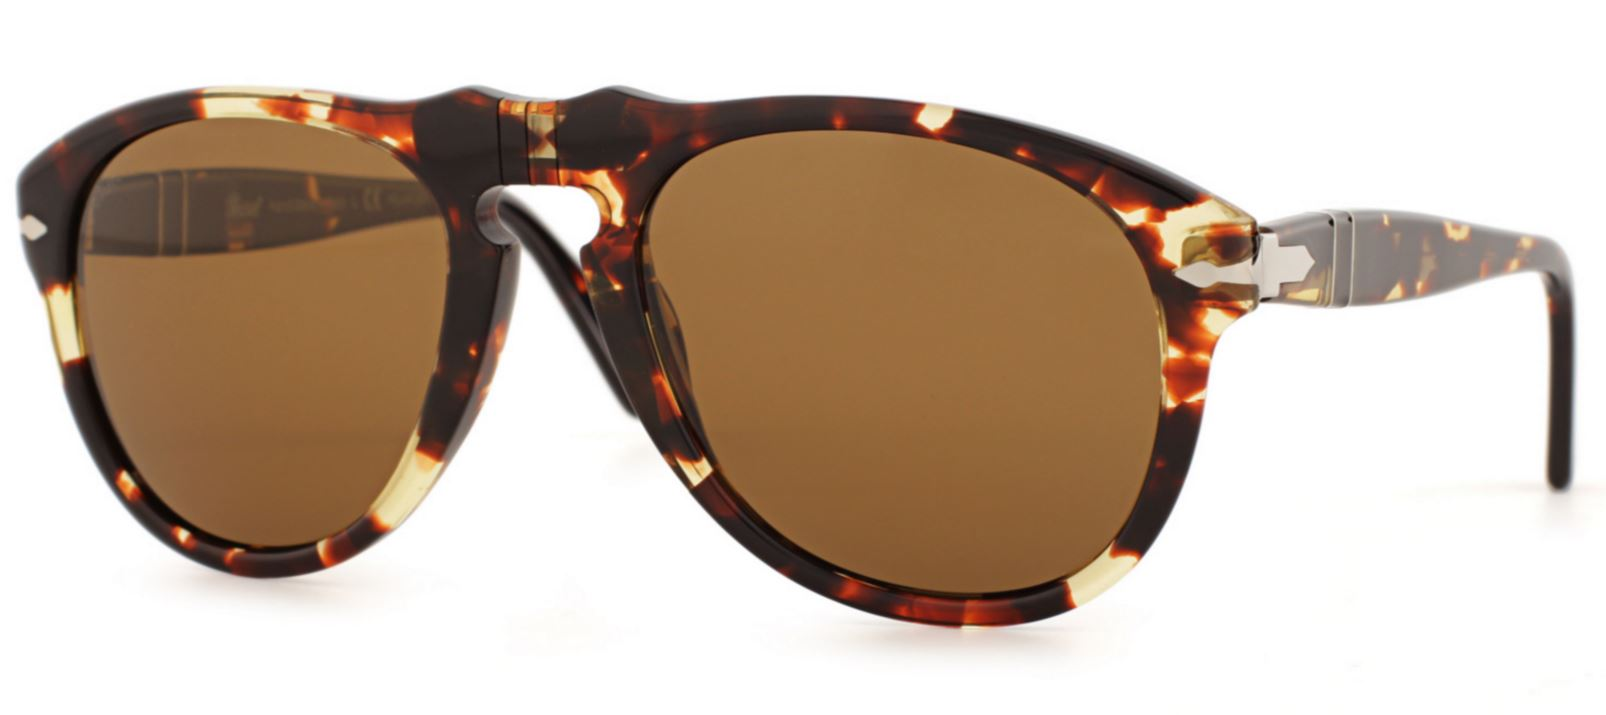 7e5d483e4a Get Free Shipping on Persol Sunglasses PO0649